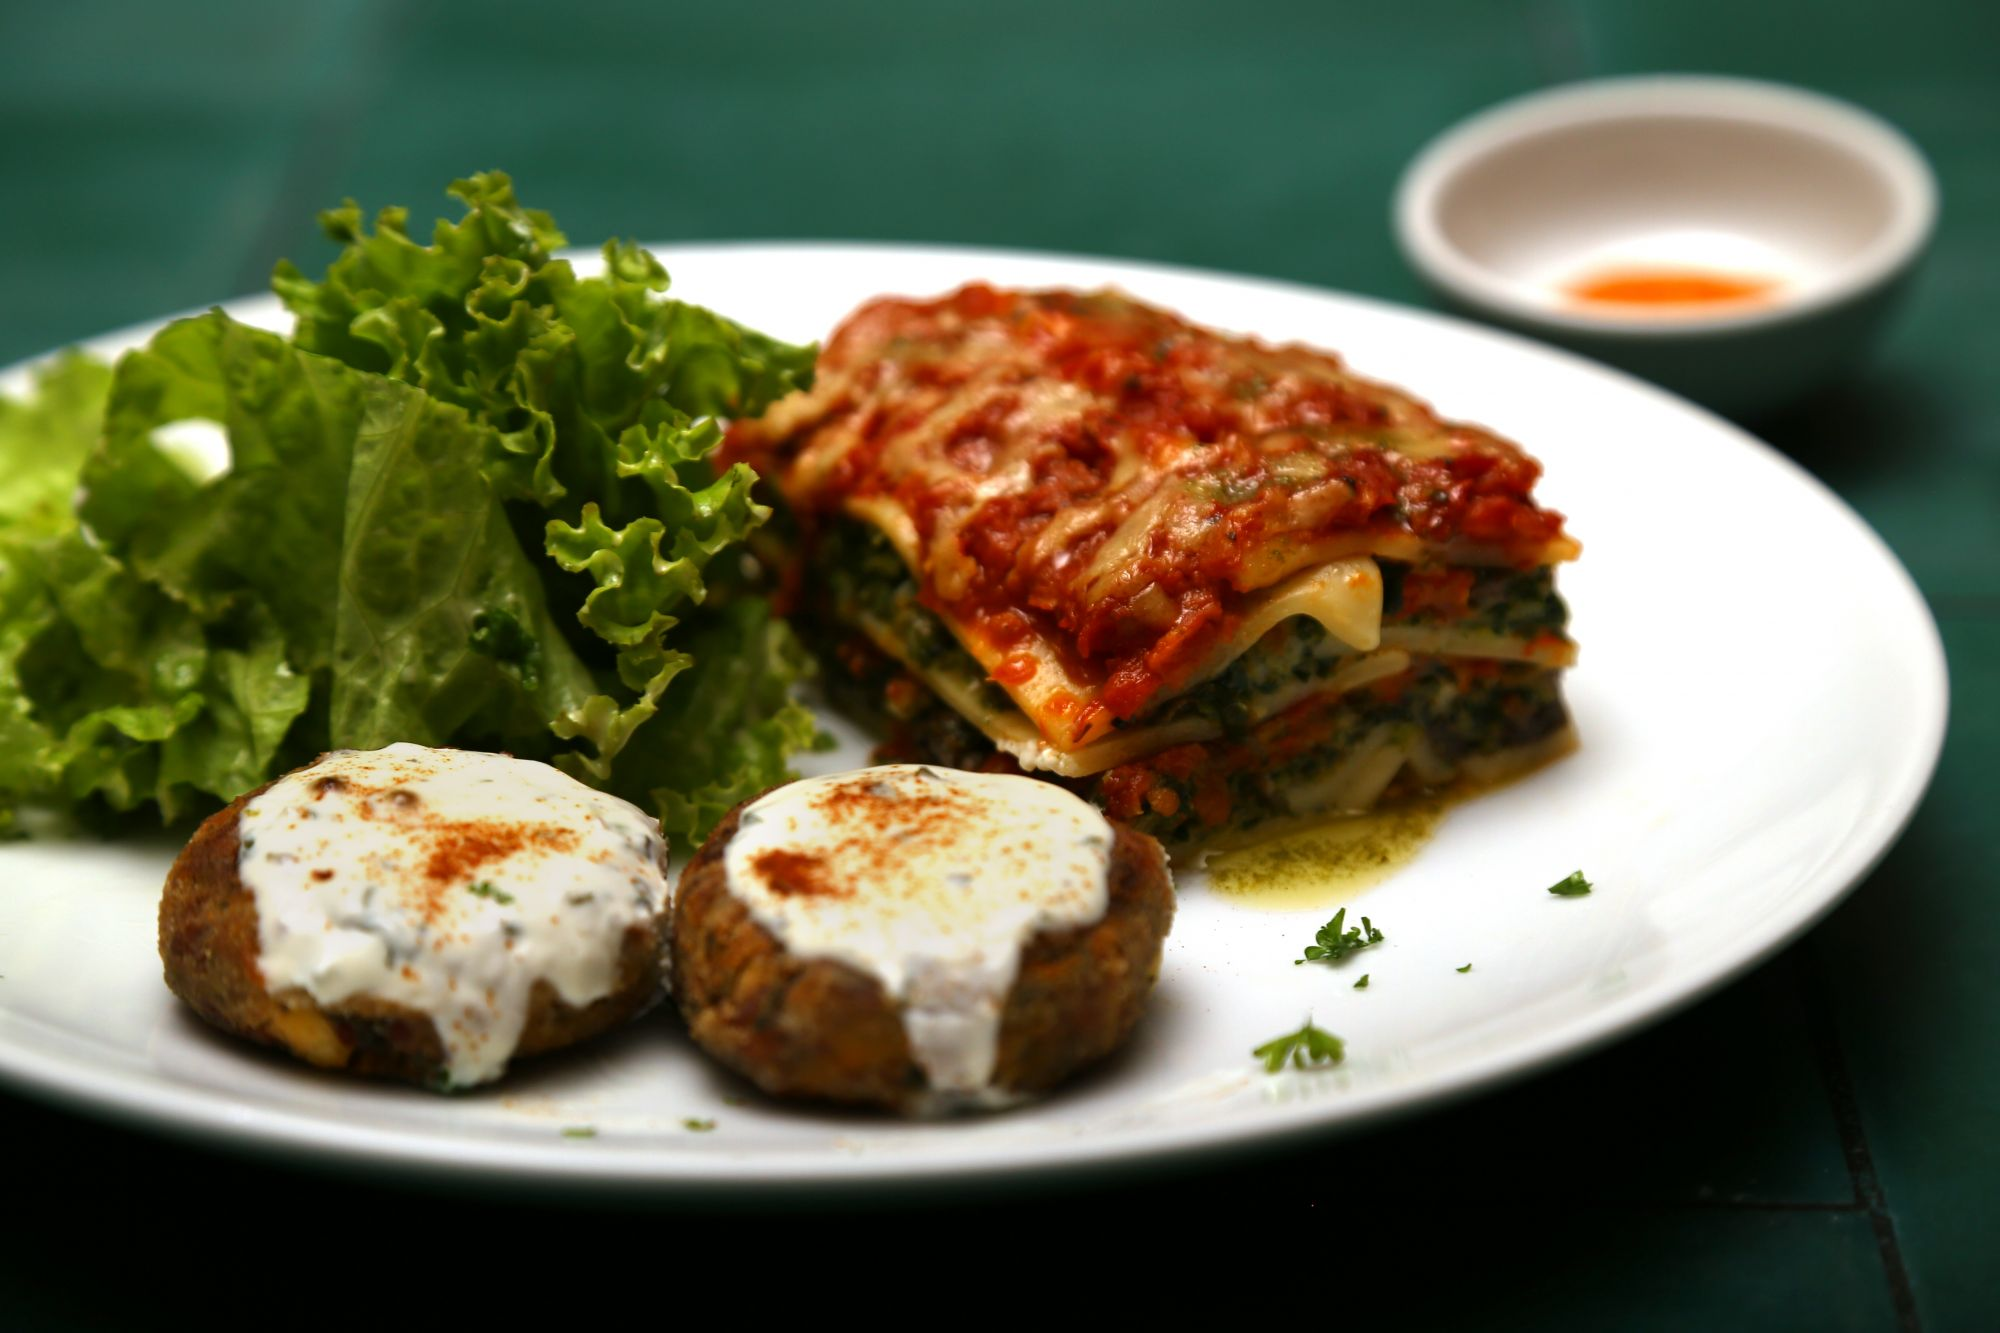 Spinach and Mushroom Lasagne, and Spinach Feta Croquettes with Salad on the side